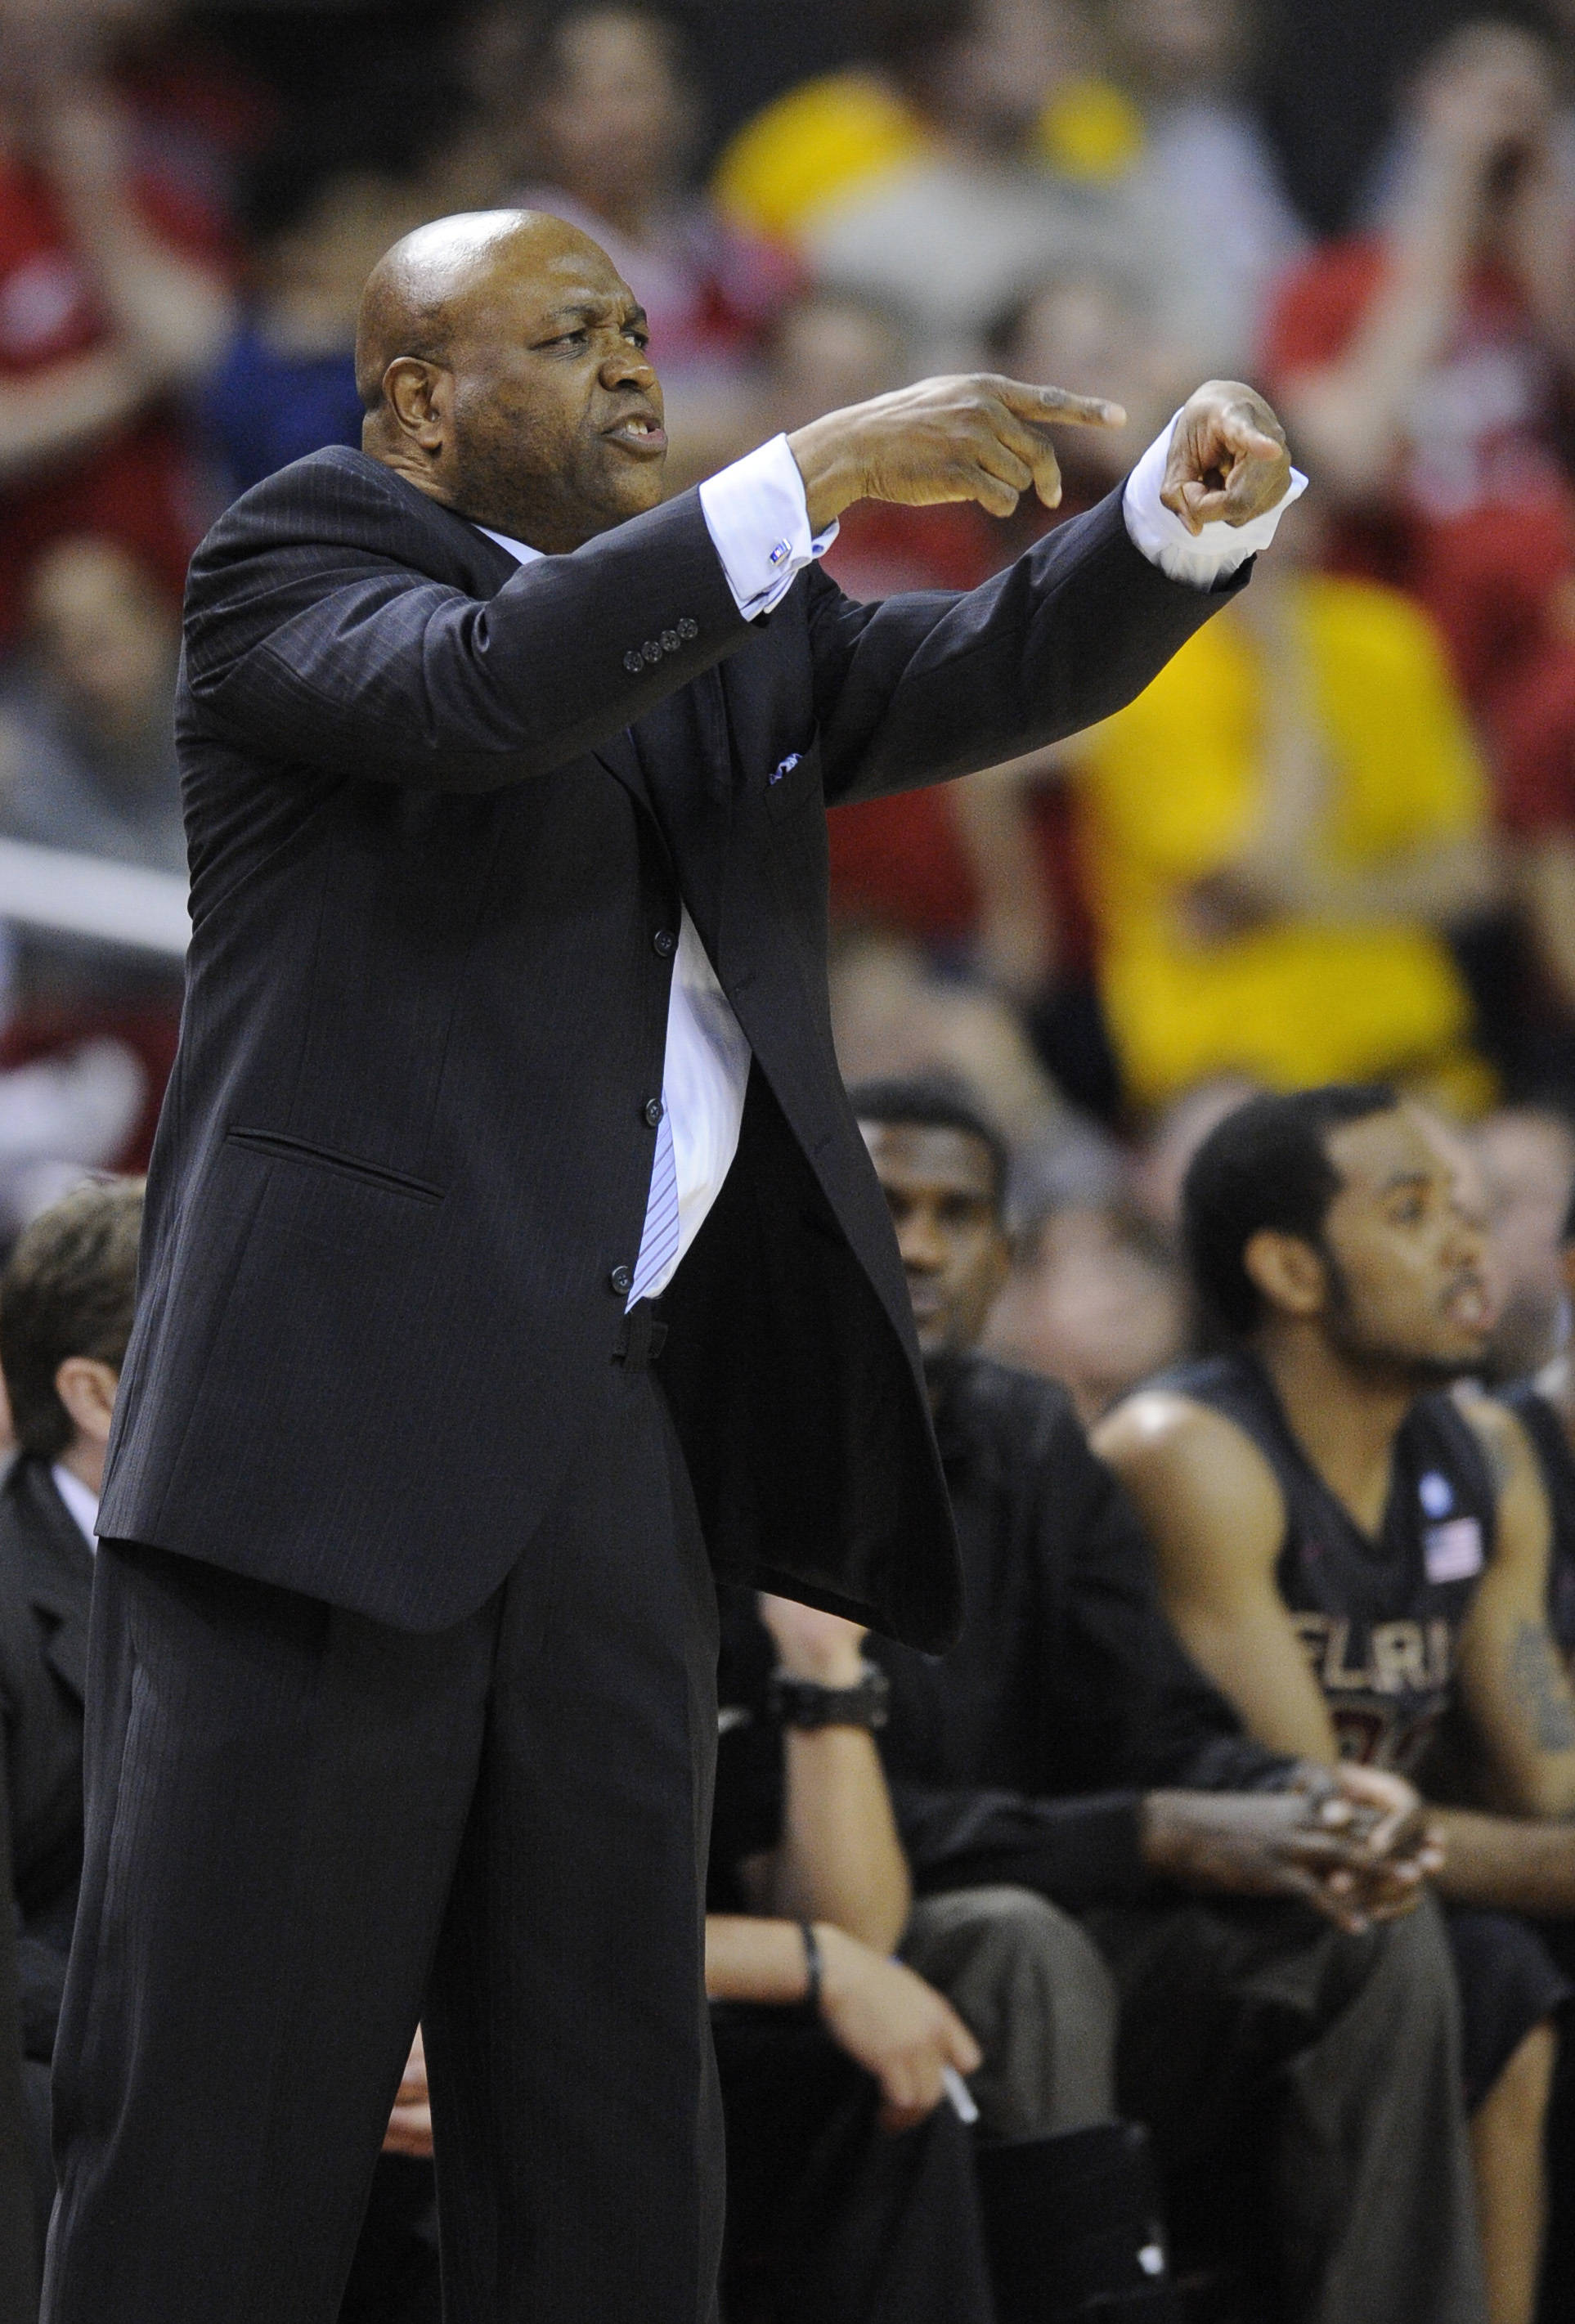 Florida State head coach Leonard Hamilton gestures during the second half of an NCAA college basketball game against Maryland, Wednesday, Feb. 23, 2011, in College Park, Md. Maryland won 78-62. (AP Photo/Nick Wass)